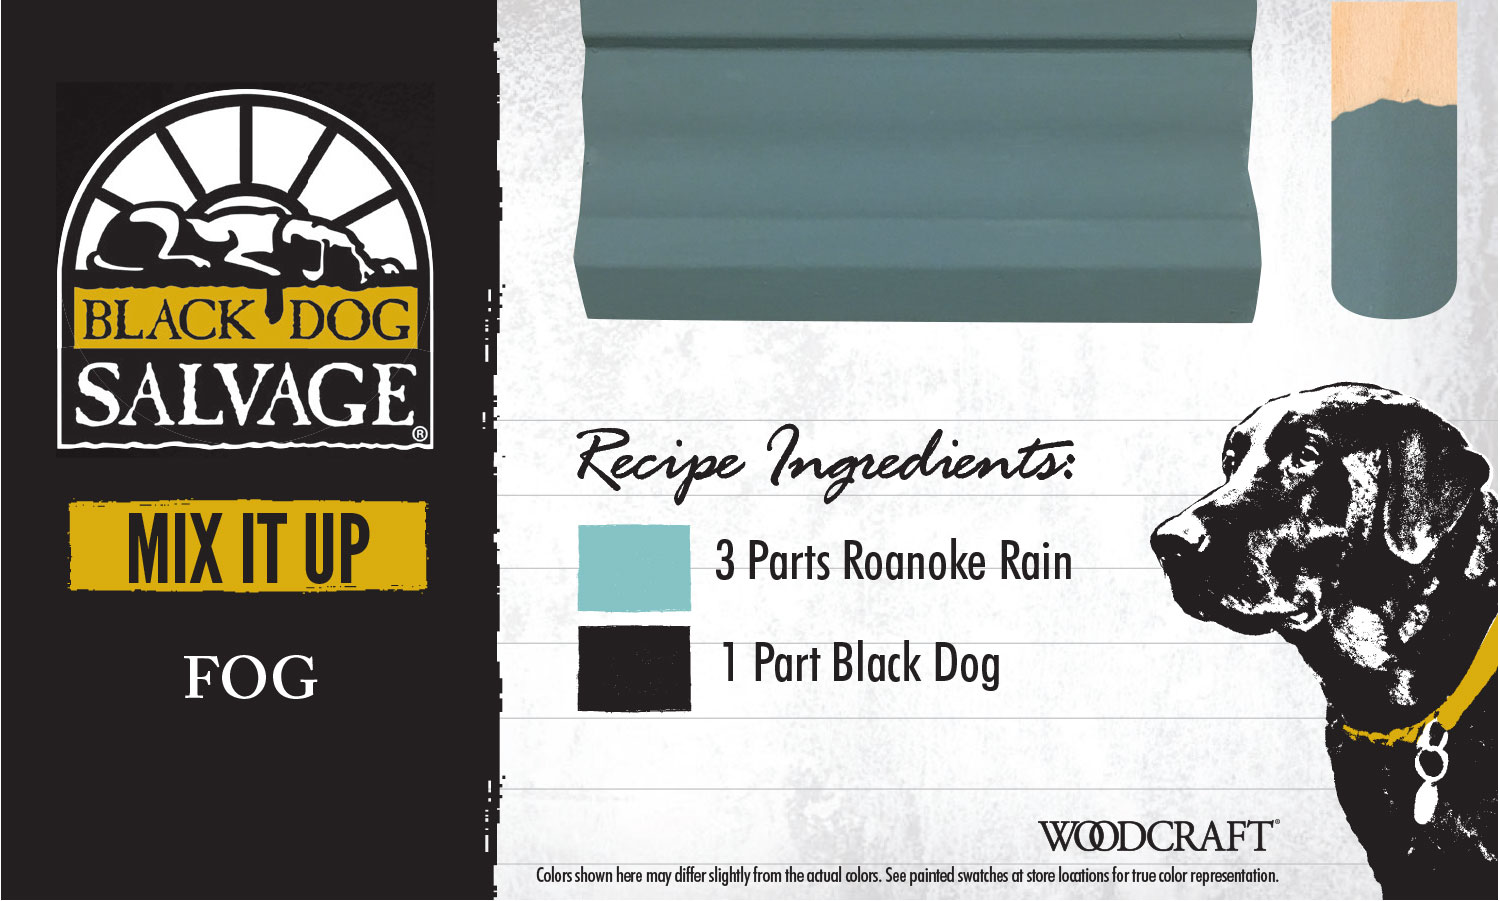 """Fog"" is made from 3 Parts ""Roanoke Rain"" and 1 Part ""Black Dog"""